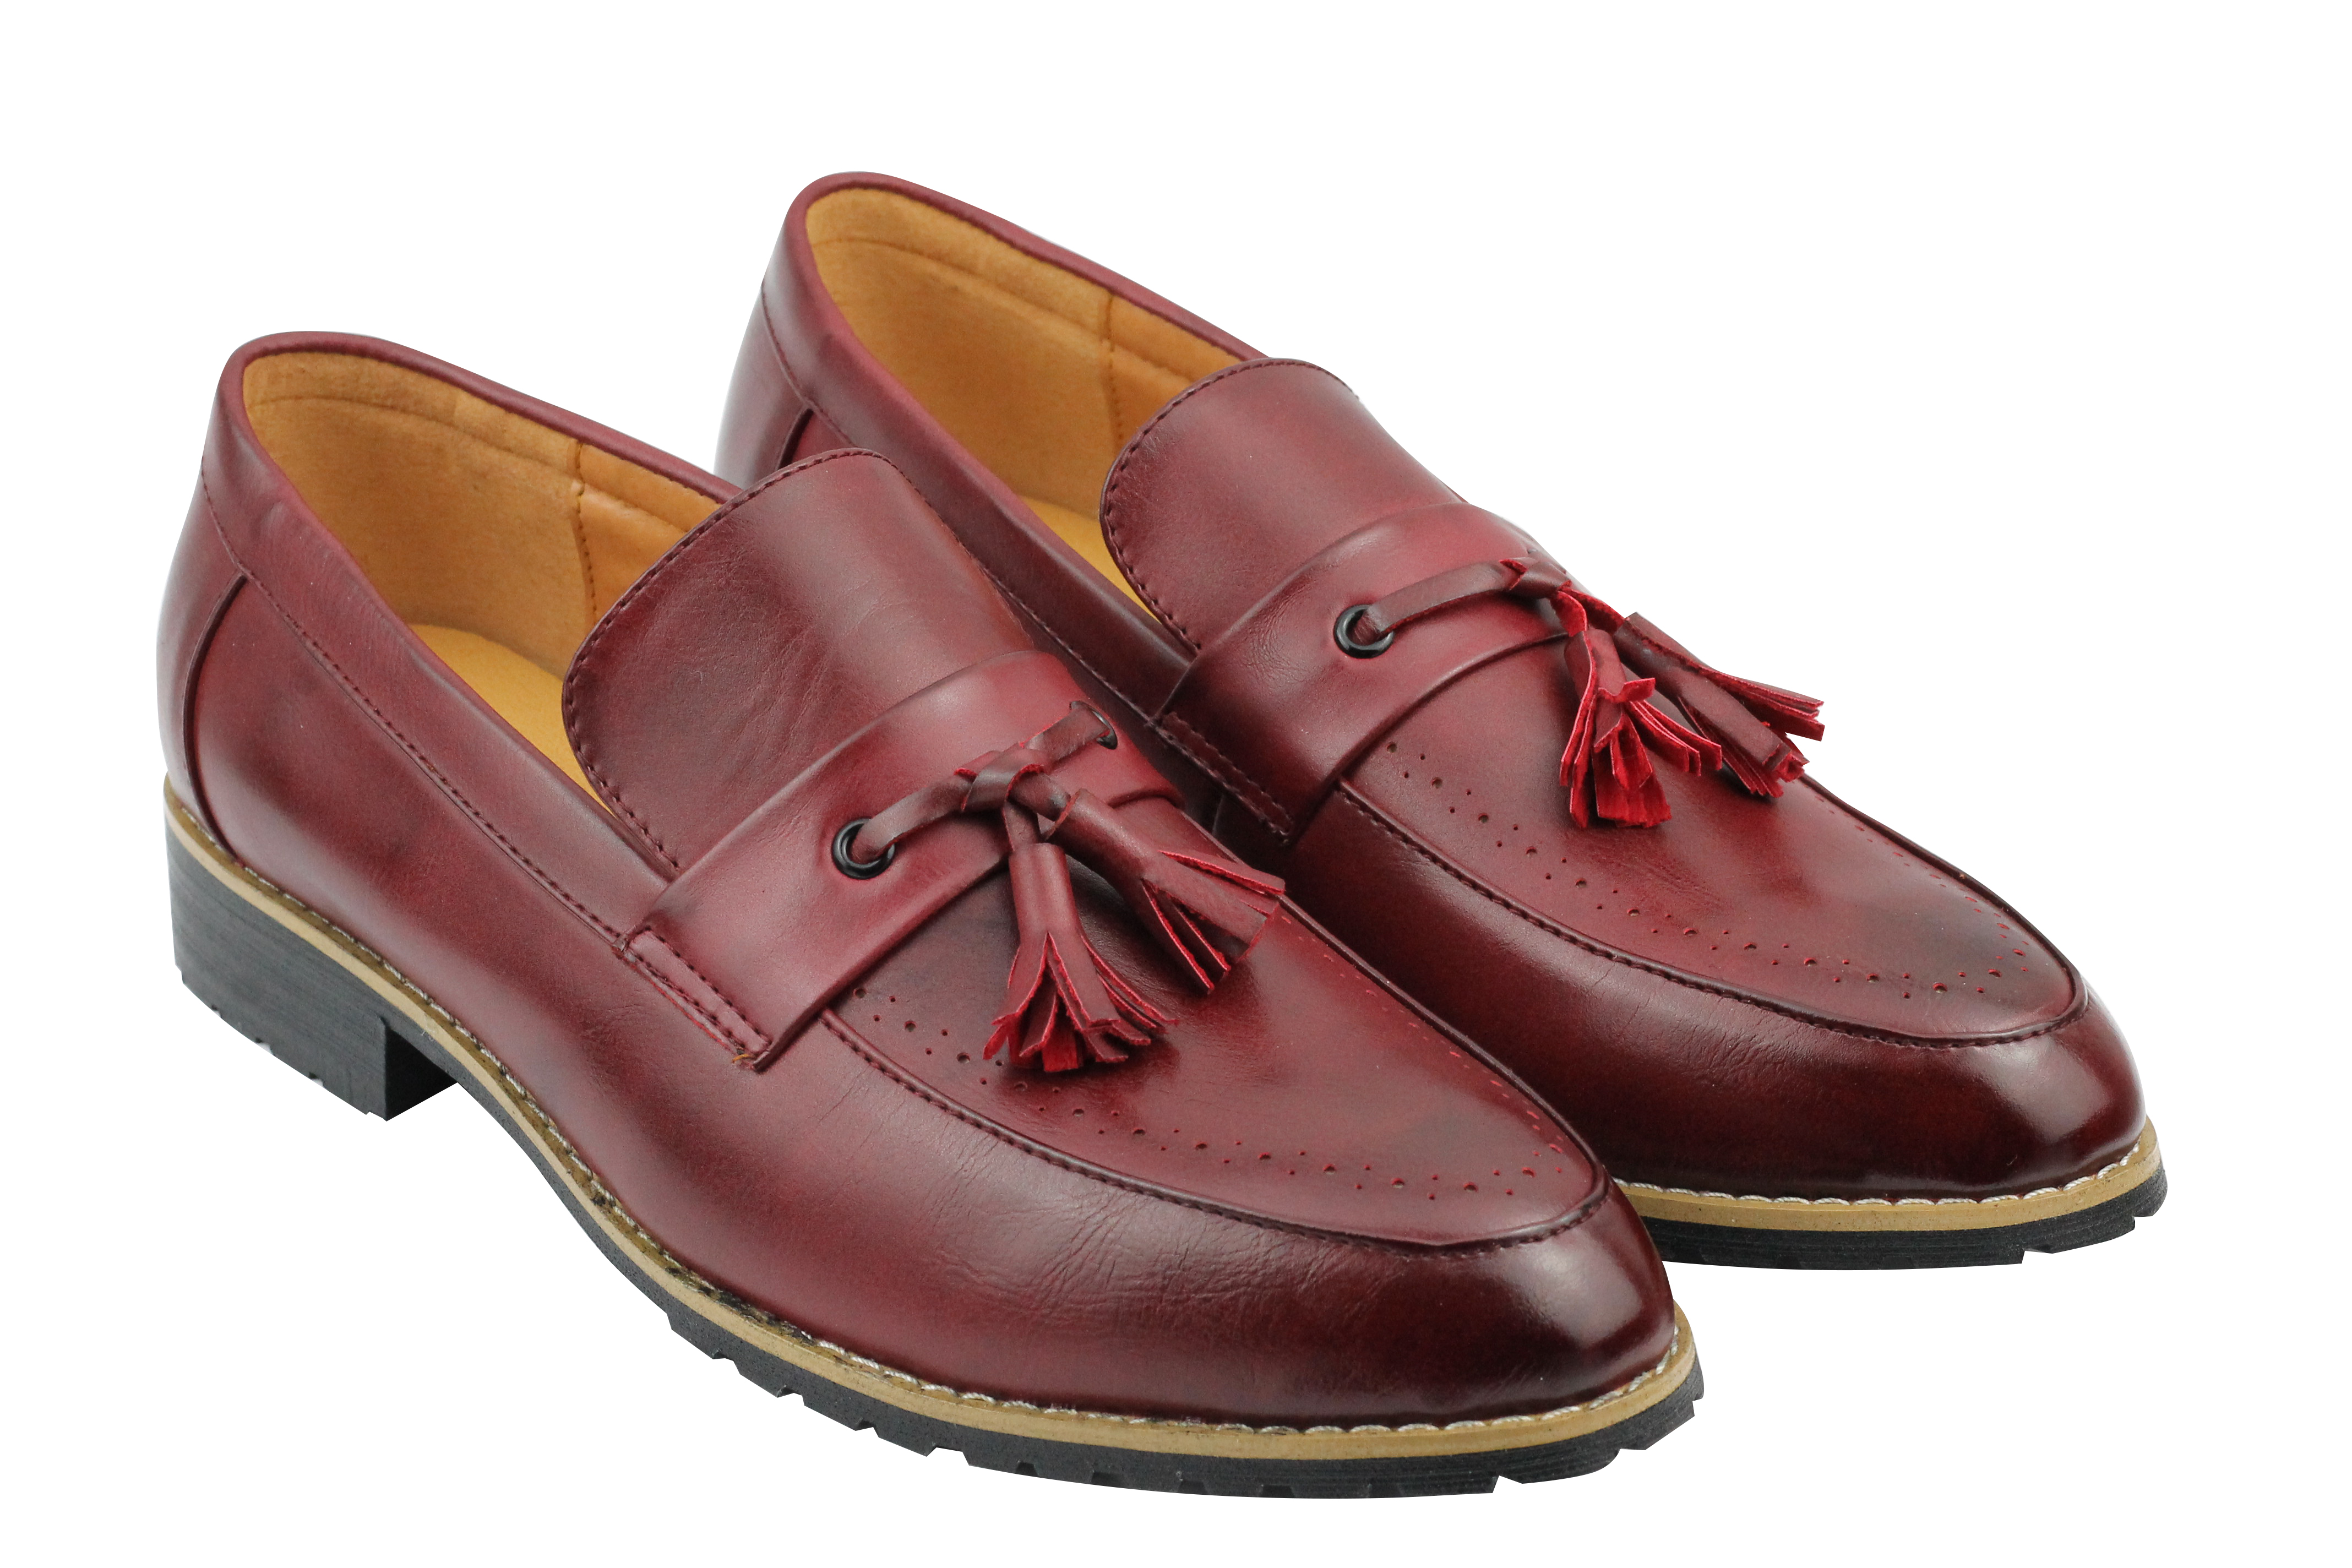 Mens-Leather-Lined-Maroon-Black-Tassel-Loafer-Smart-Casual-Slip-on-Driving-Shoes thumbnail 8